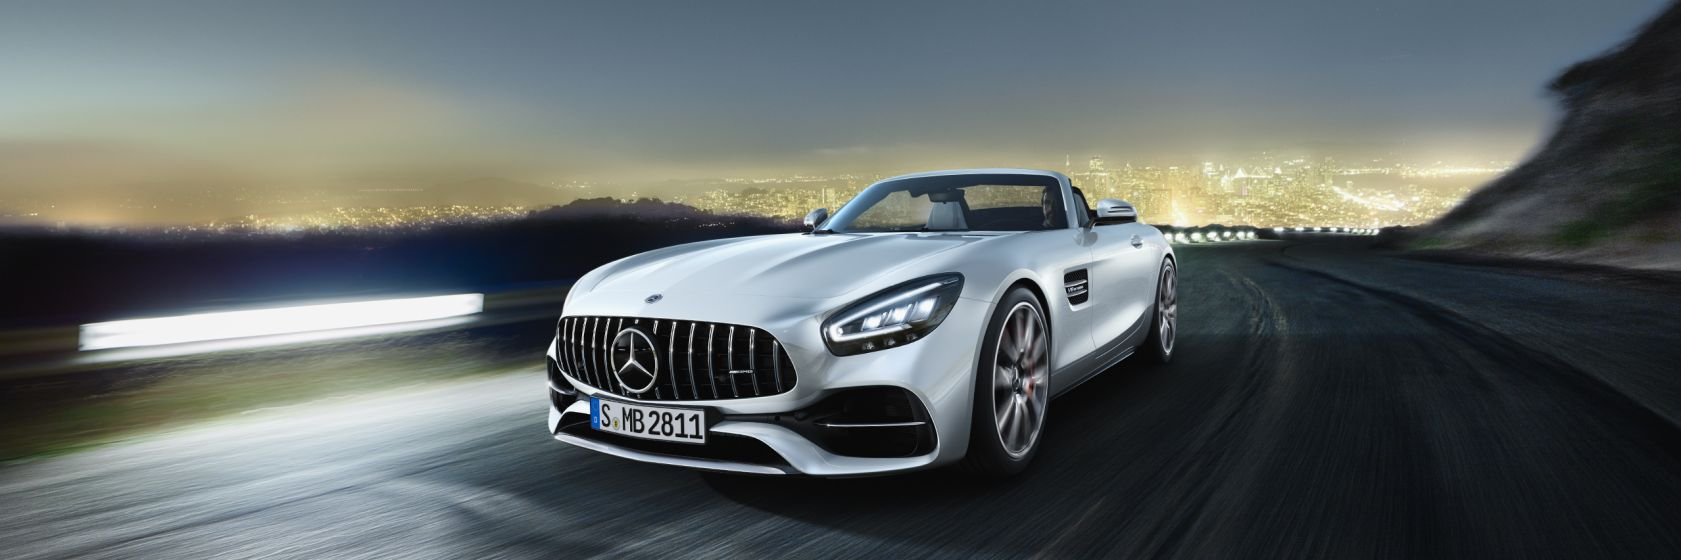 Mercedes Amg Gt Roadster Offers And Services